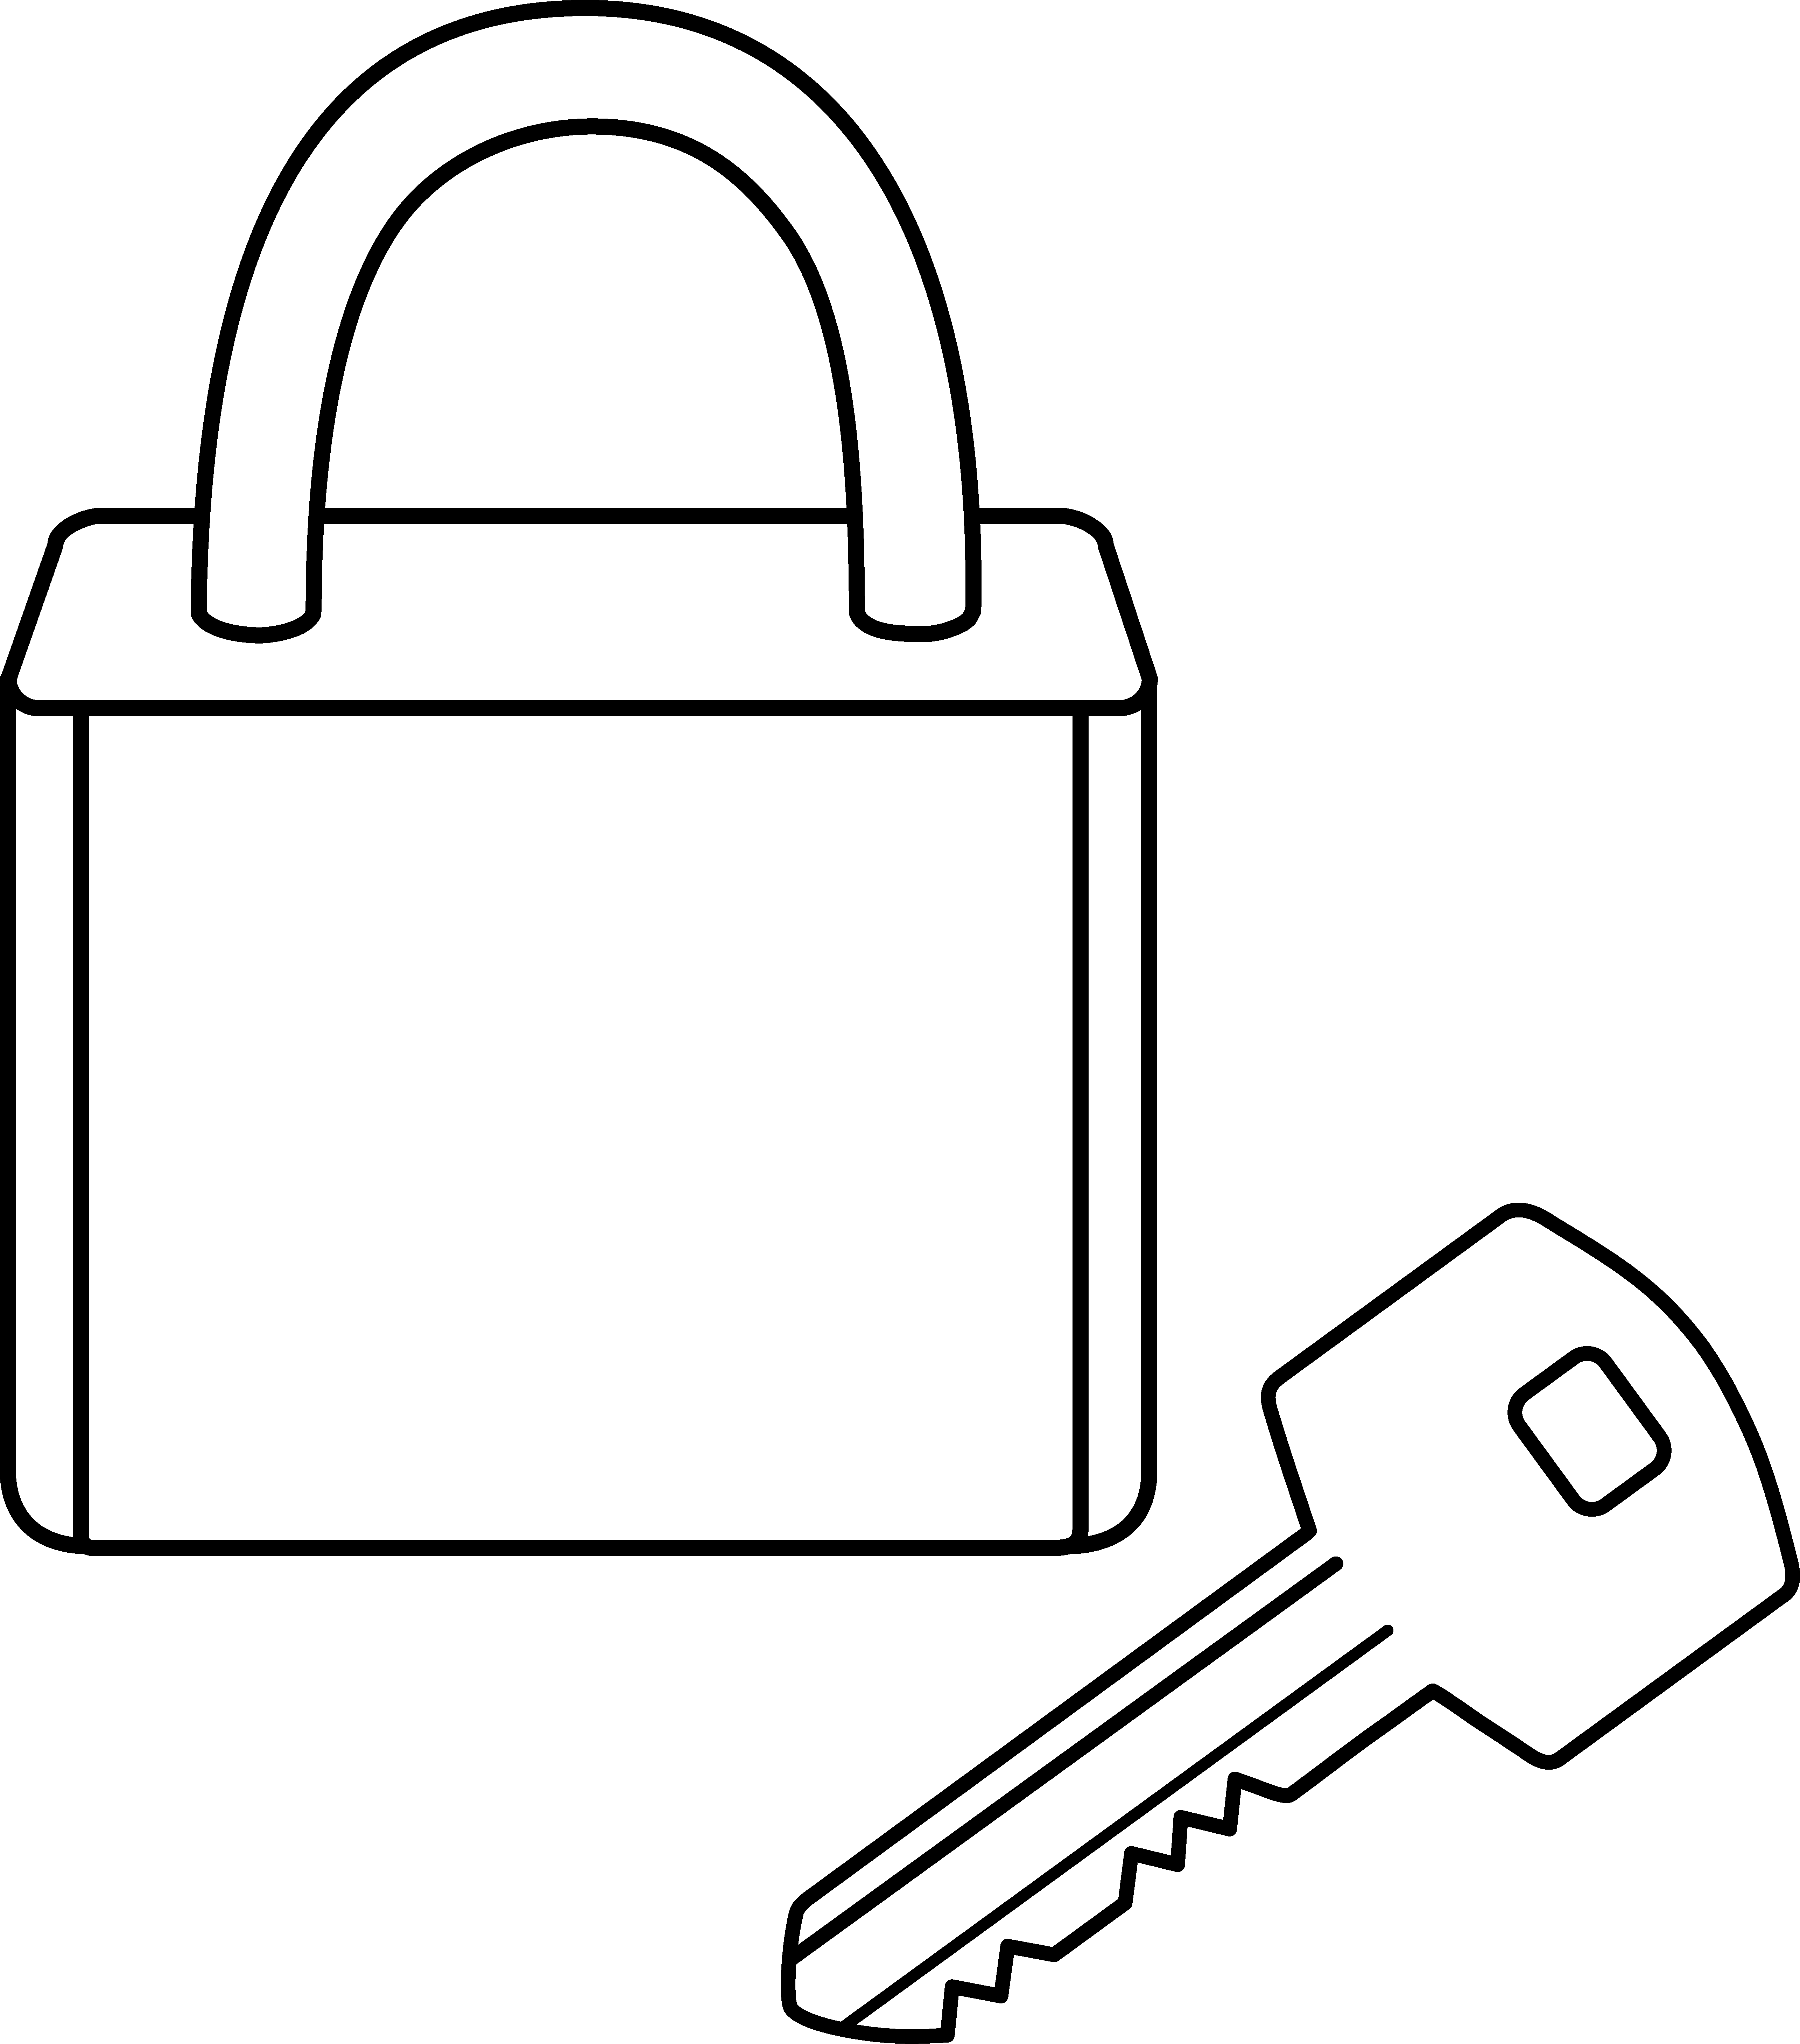 Key clipart key lock #14